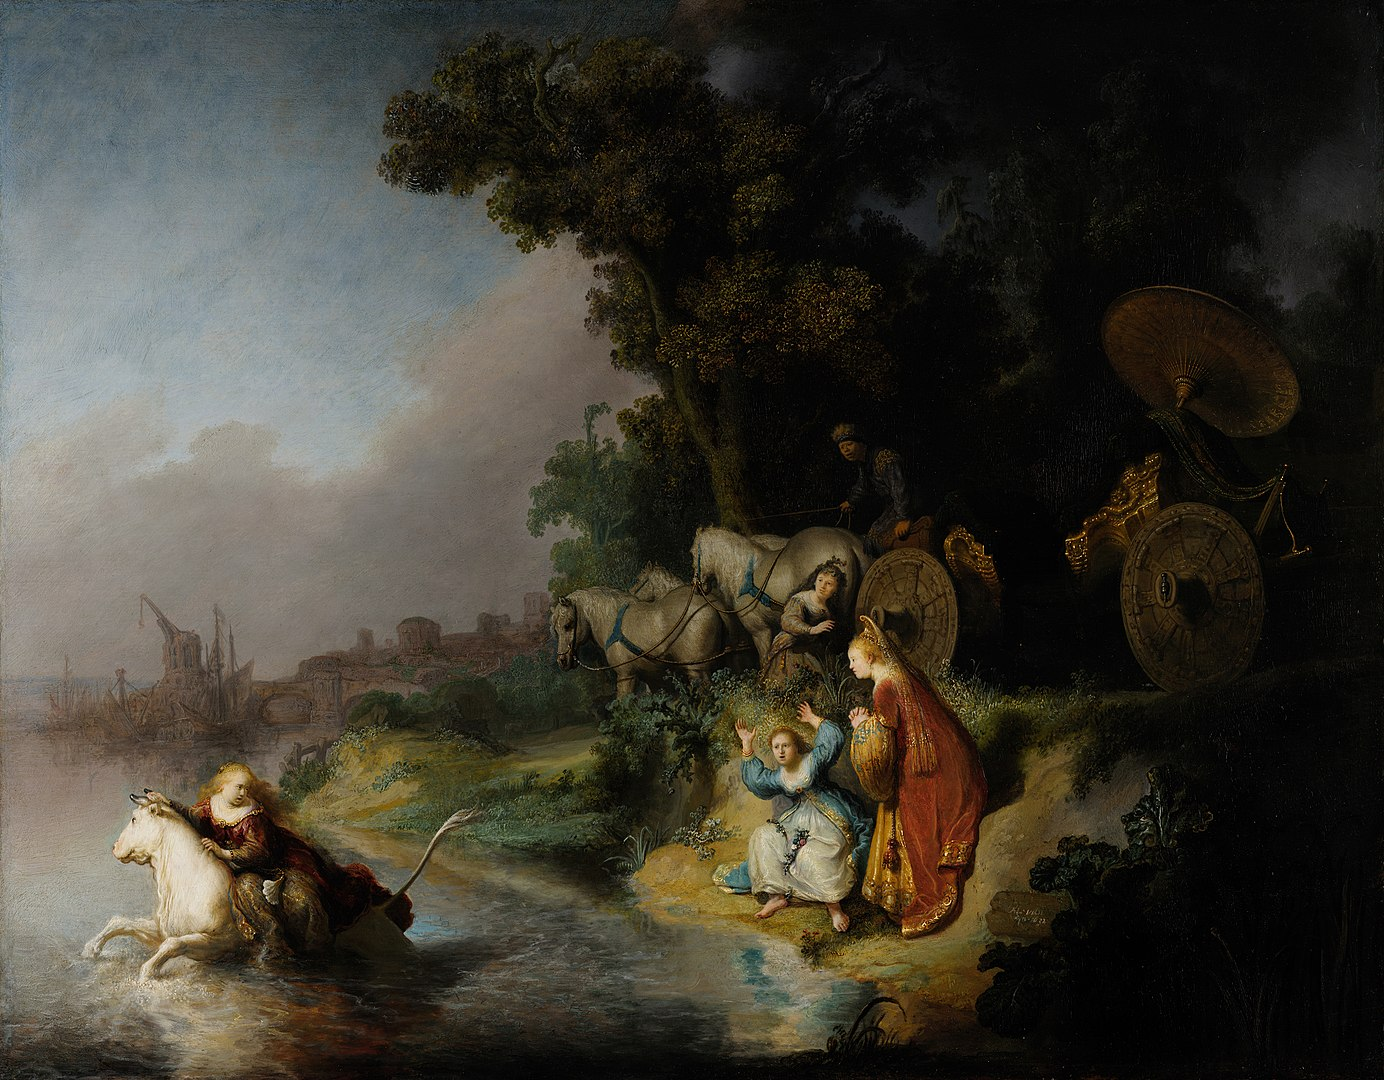 The Abduction of Europa by Rembrandt is just full of the colors and details that makes it one of the works of art that I love.